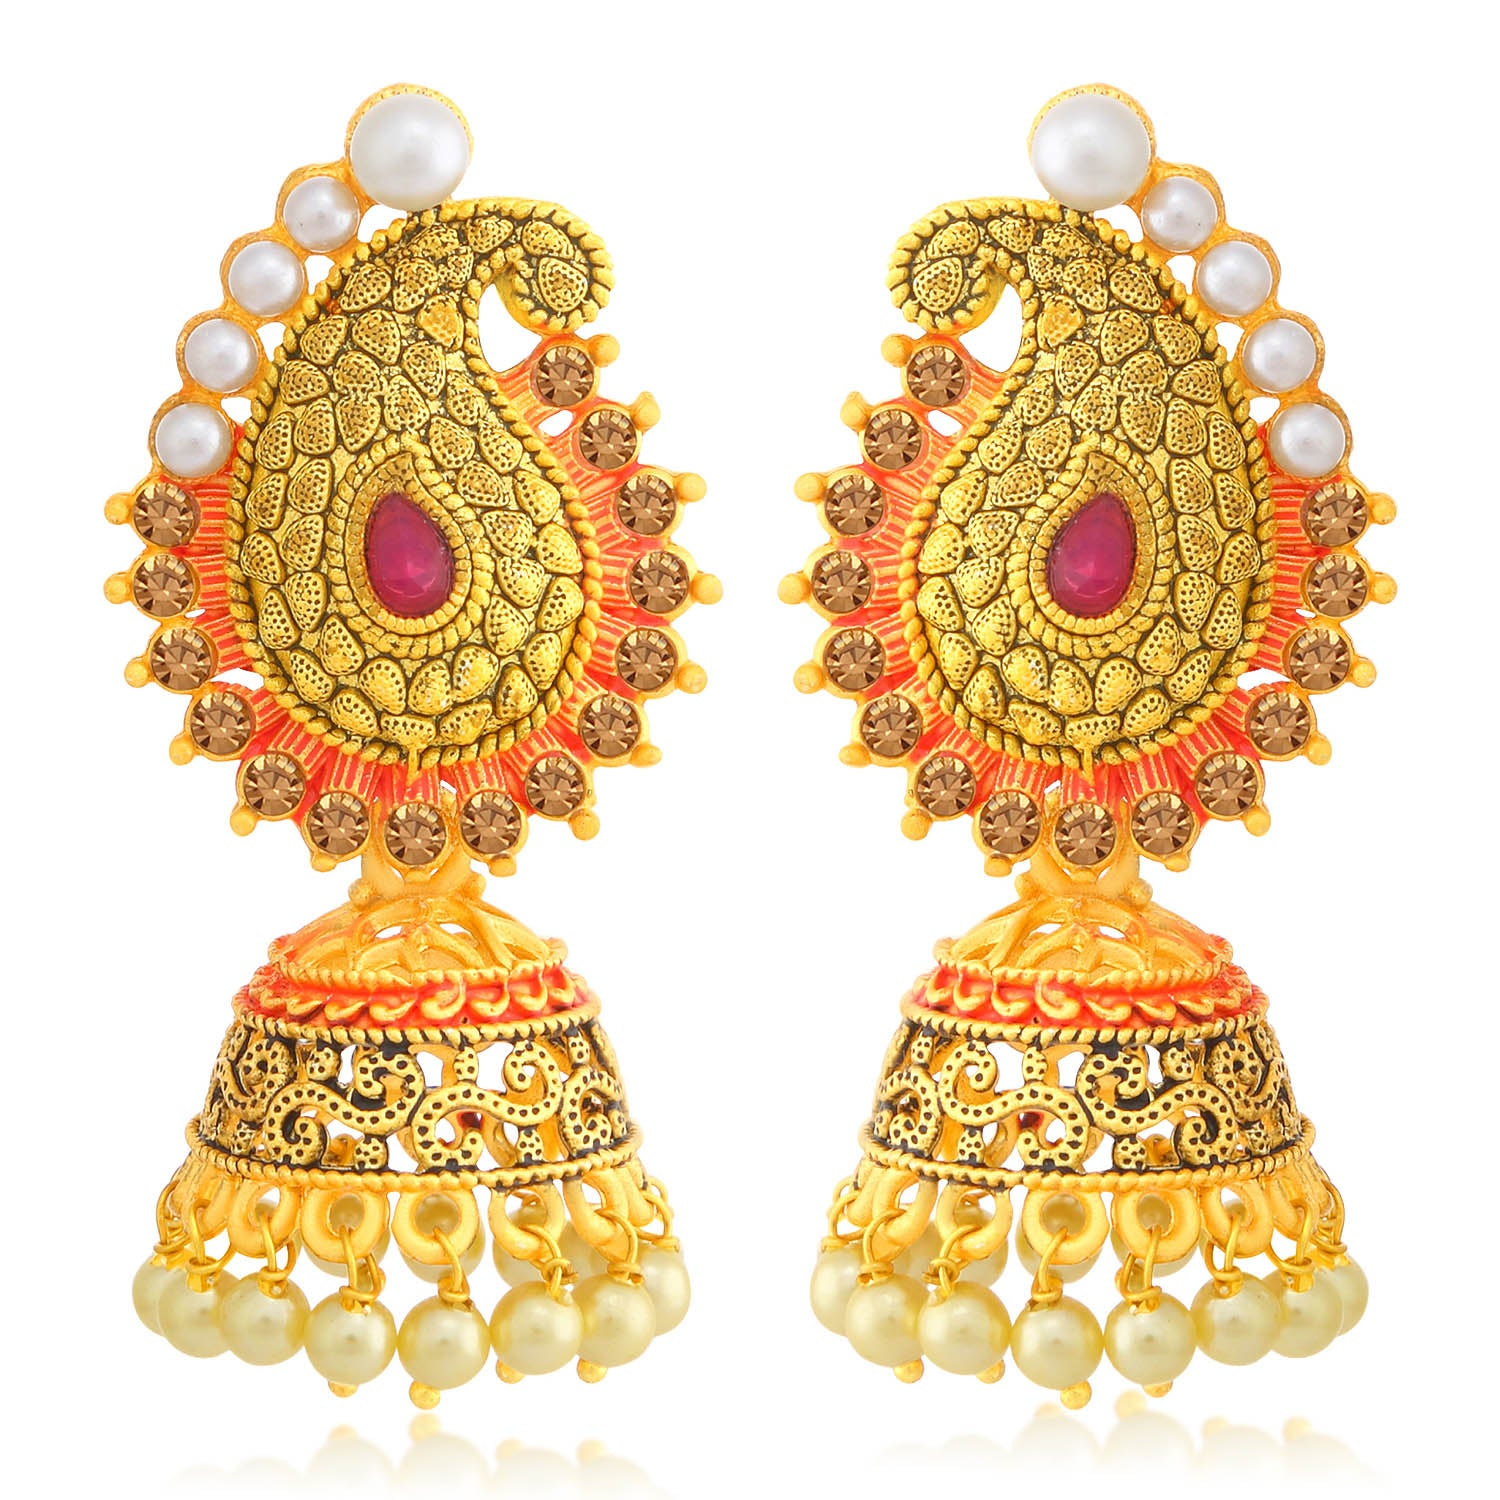 Sukkhi Marvellous LCT Stone Gold Plated Paisley Pearl Red Mint Meena Collection Jhumki Earring For Women-SUKKHI1-Earring